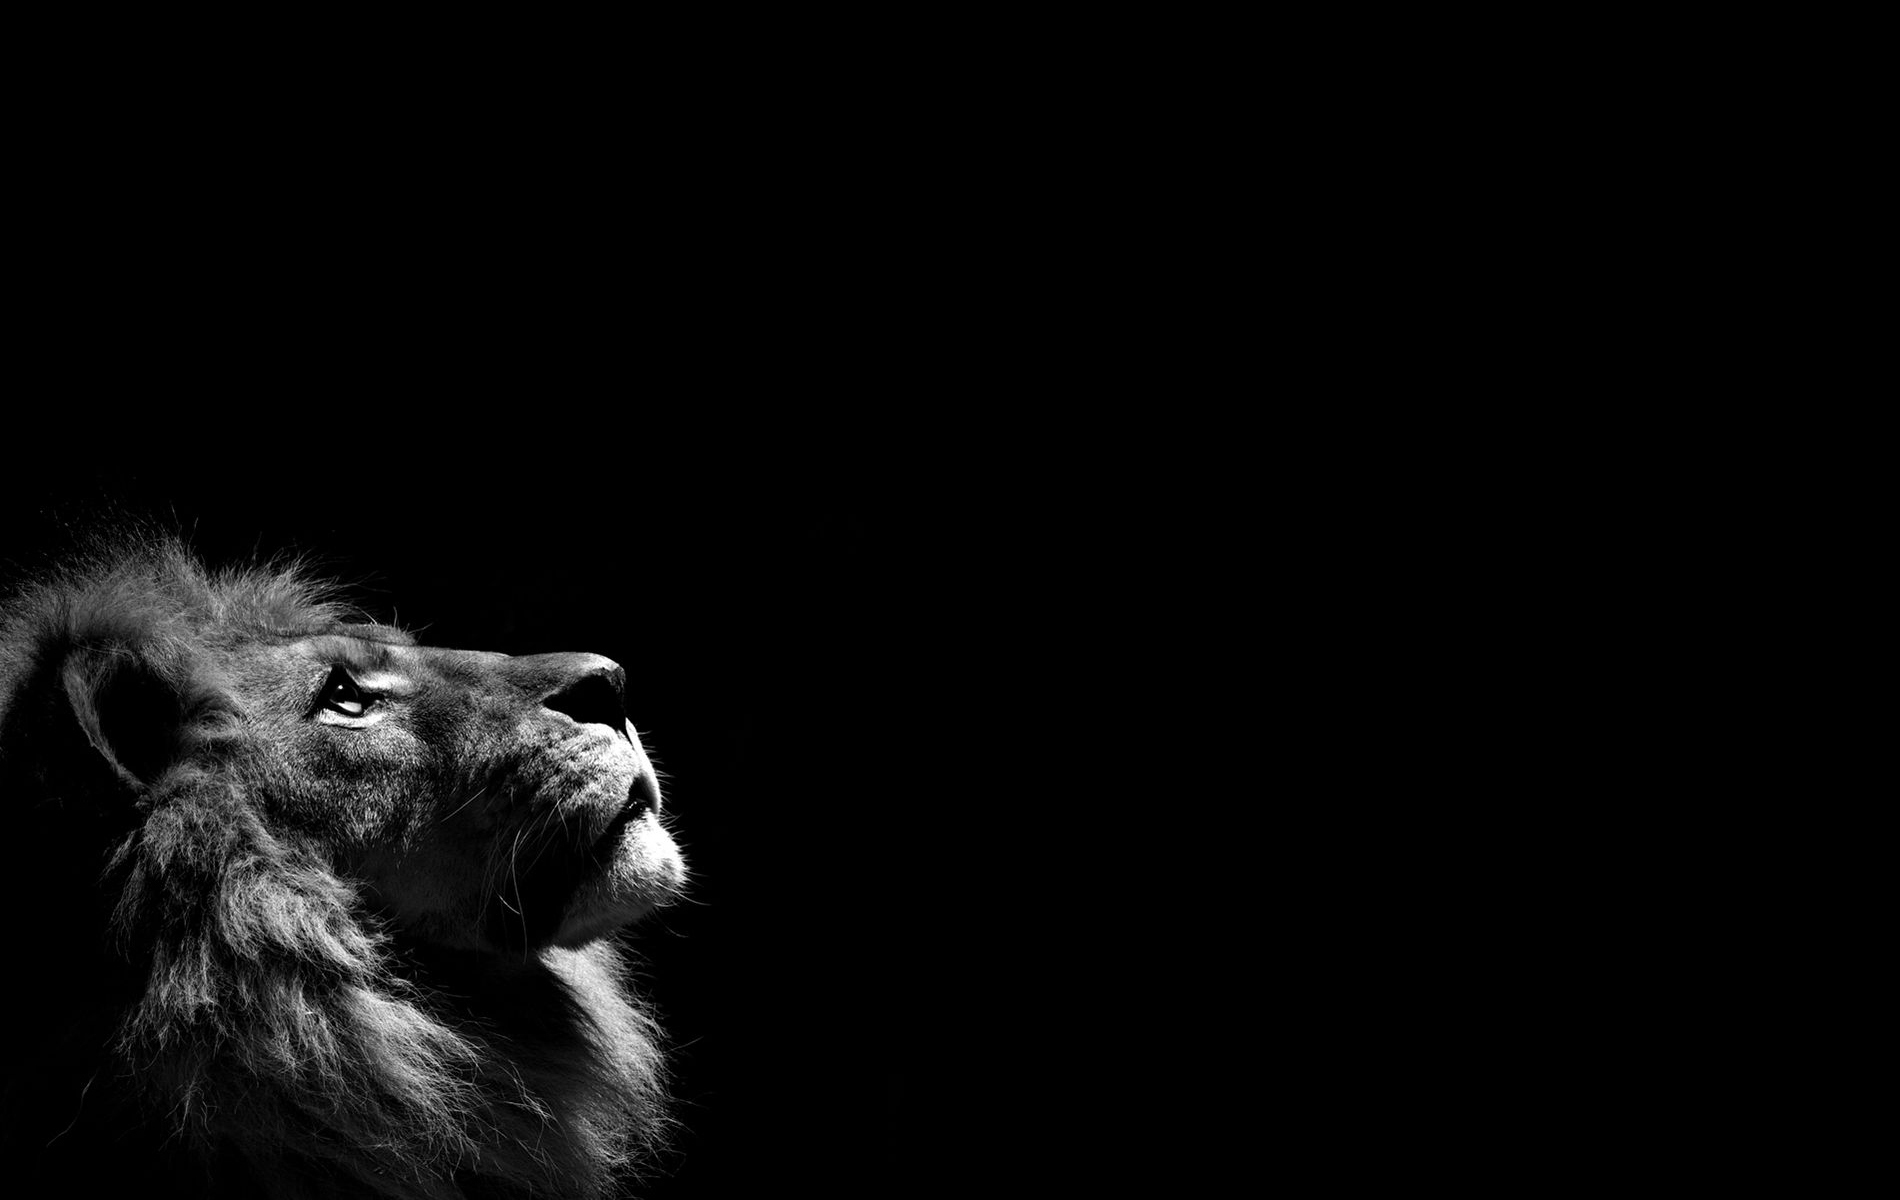 lion hd wallpapers lion hd pictures free download hd 1900x1200